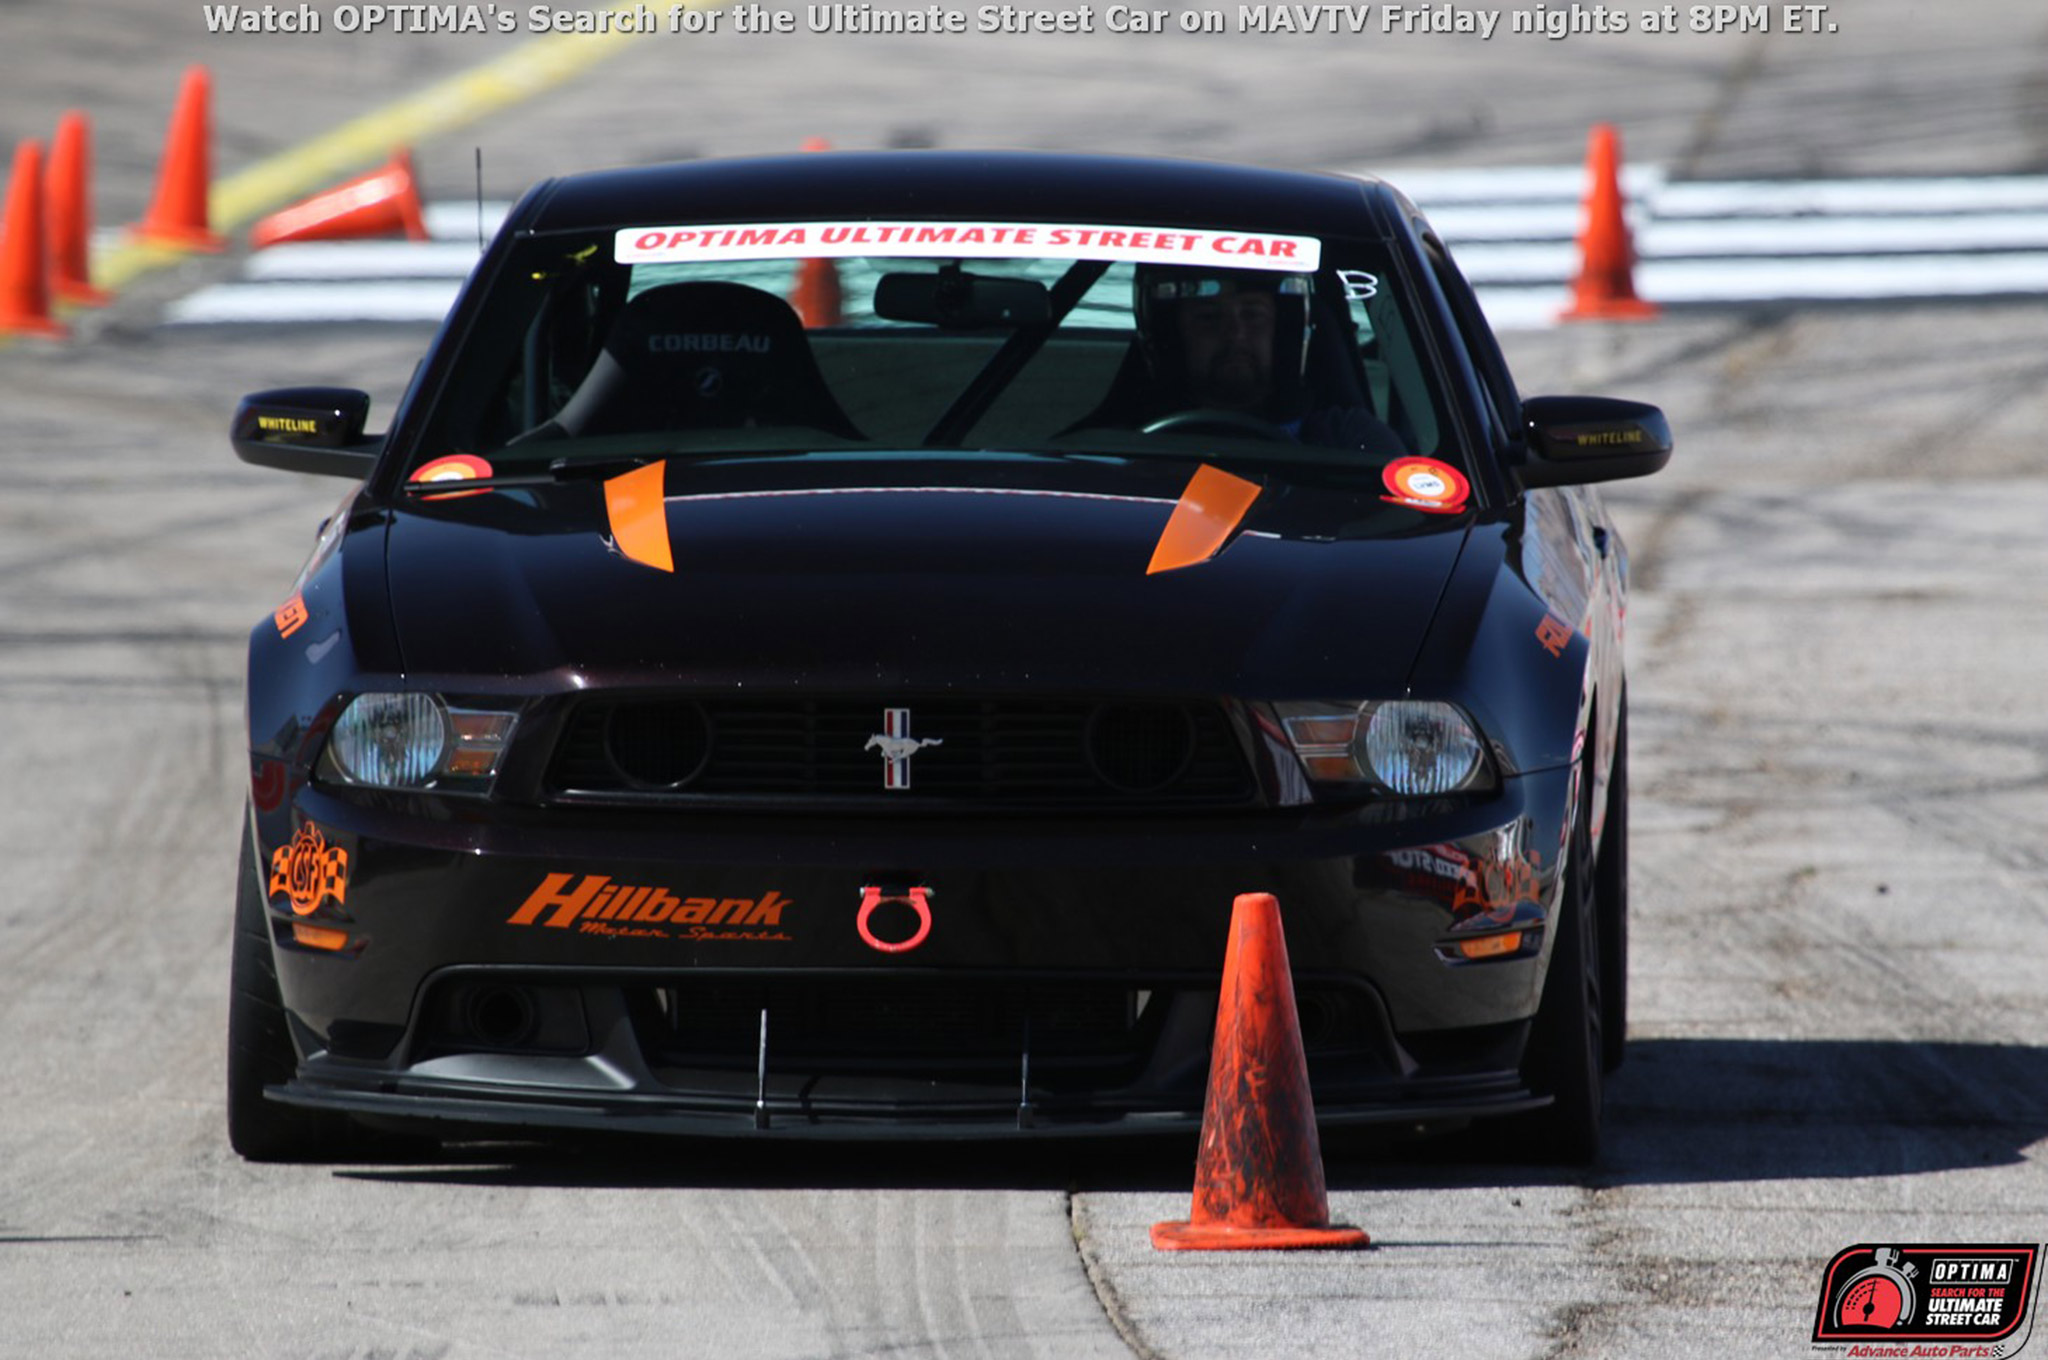 Andrew Nier doesn't have a fancy tow rig and often drives his Mustang to events, even if it means a cross-country trek with spare tires packed in the backseat. He's climbed the mountain and made it to the OUSCI before and hopes to repeat the performance in 2016.